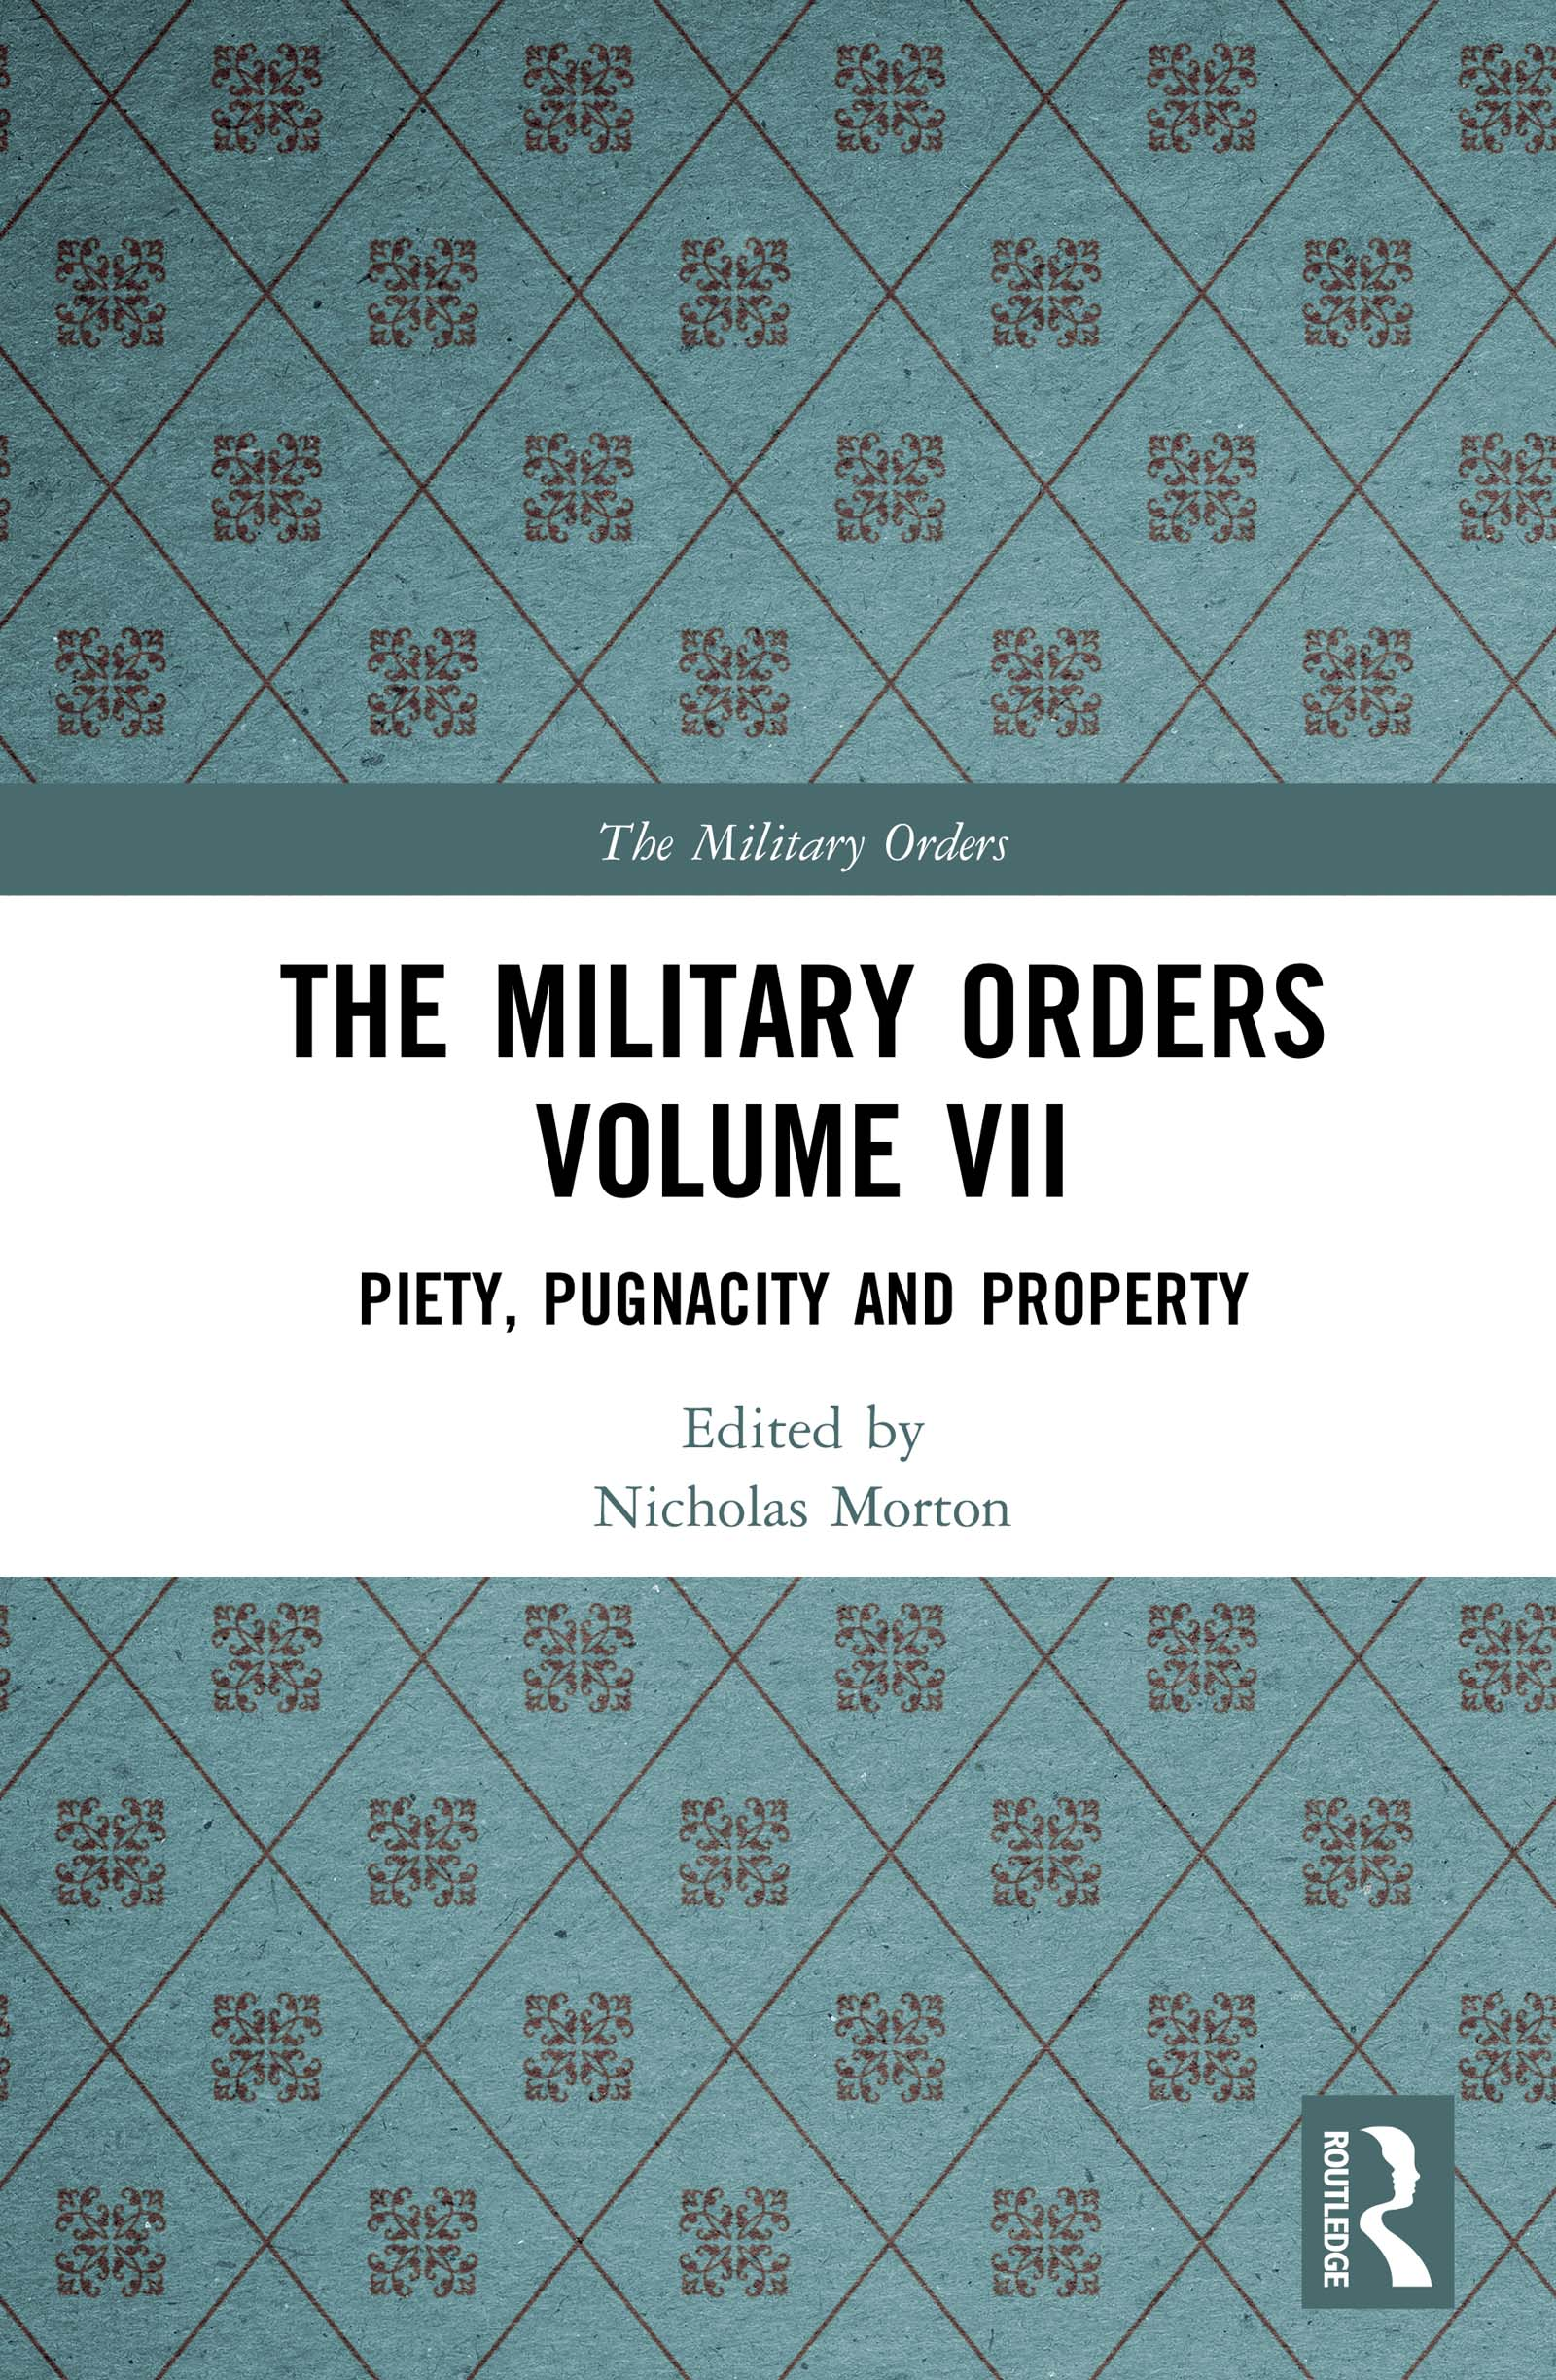 The Military Orders Volume VII: Piety, Pugnacity and Property book cover